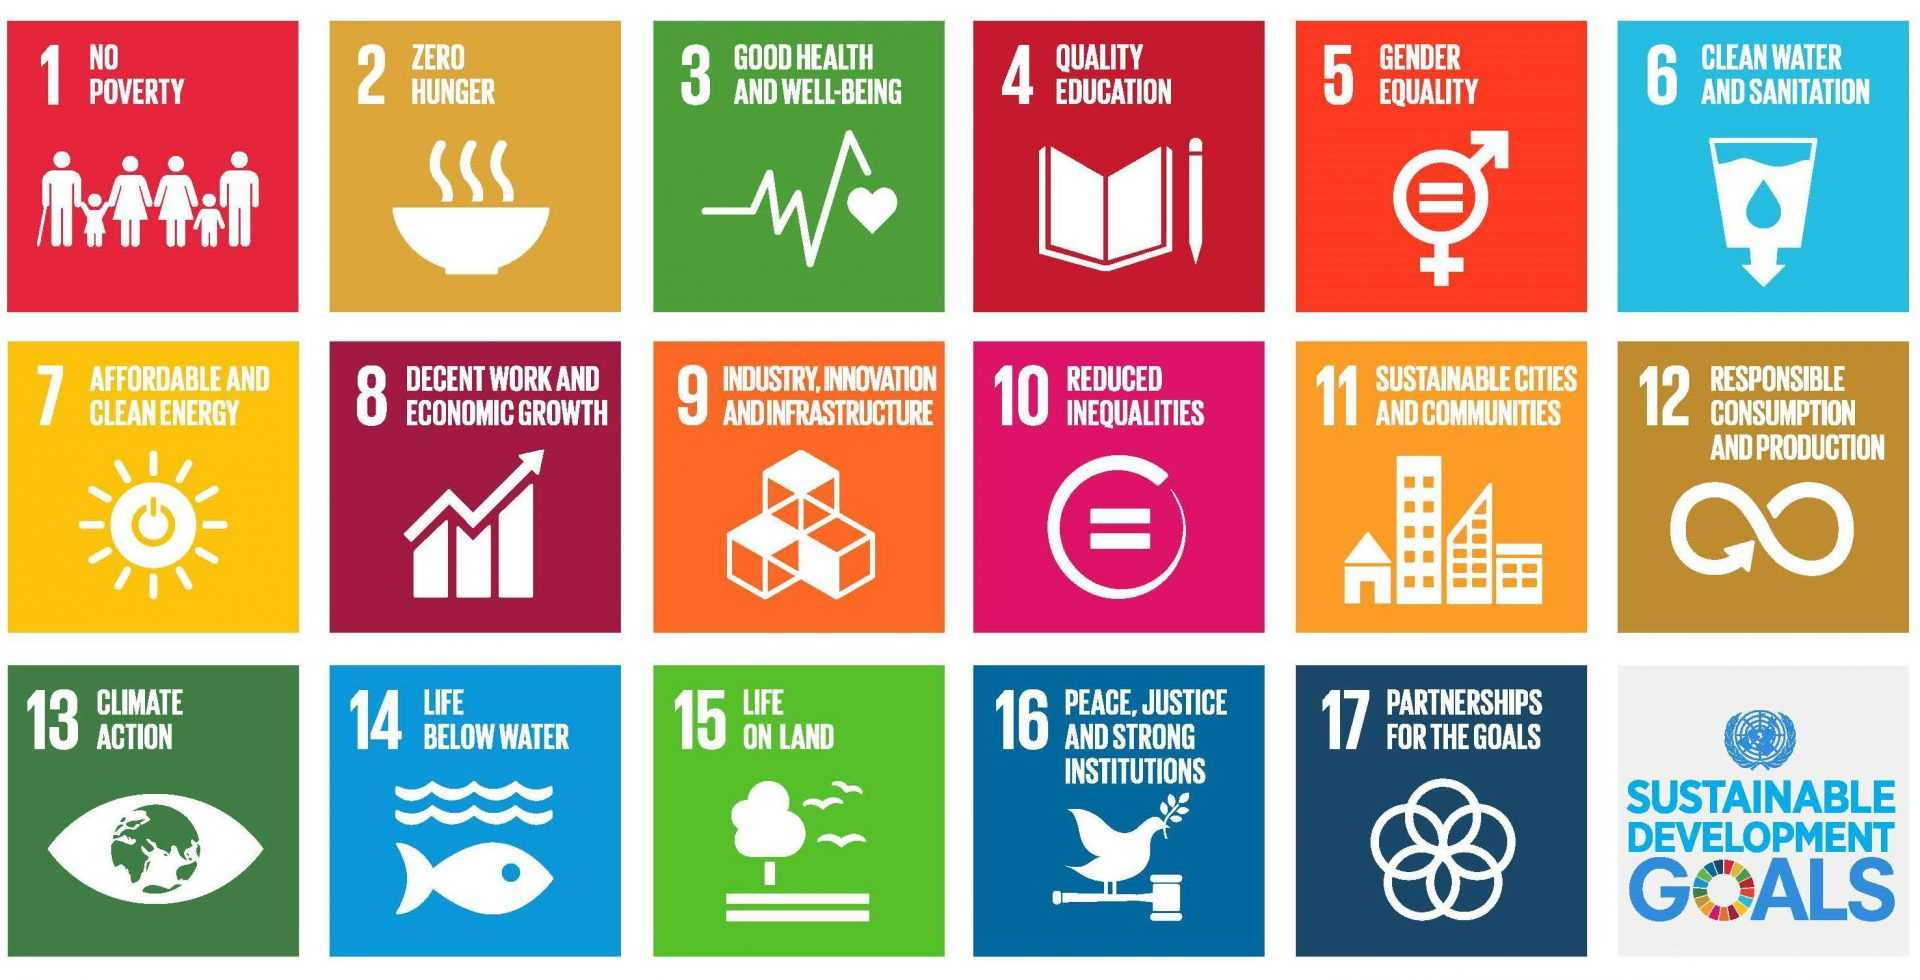 Sustainability - Making Global Goals Local